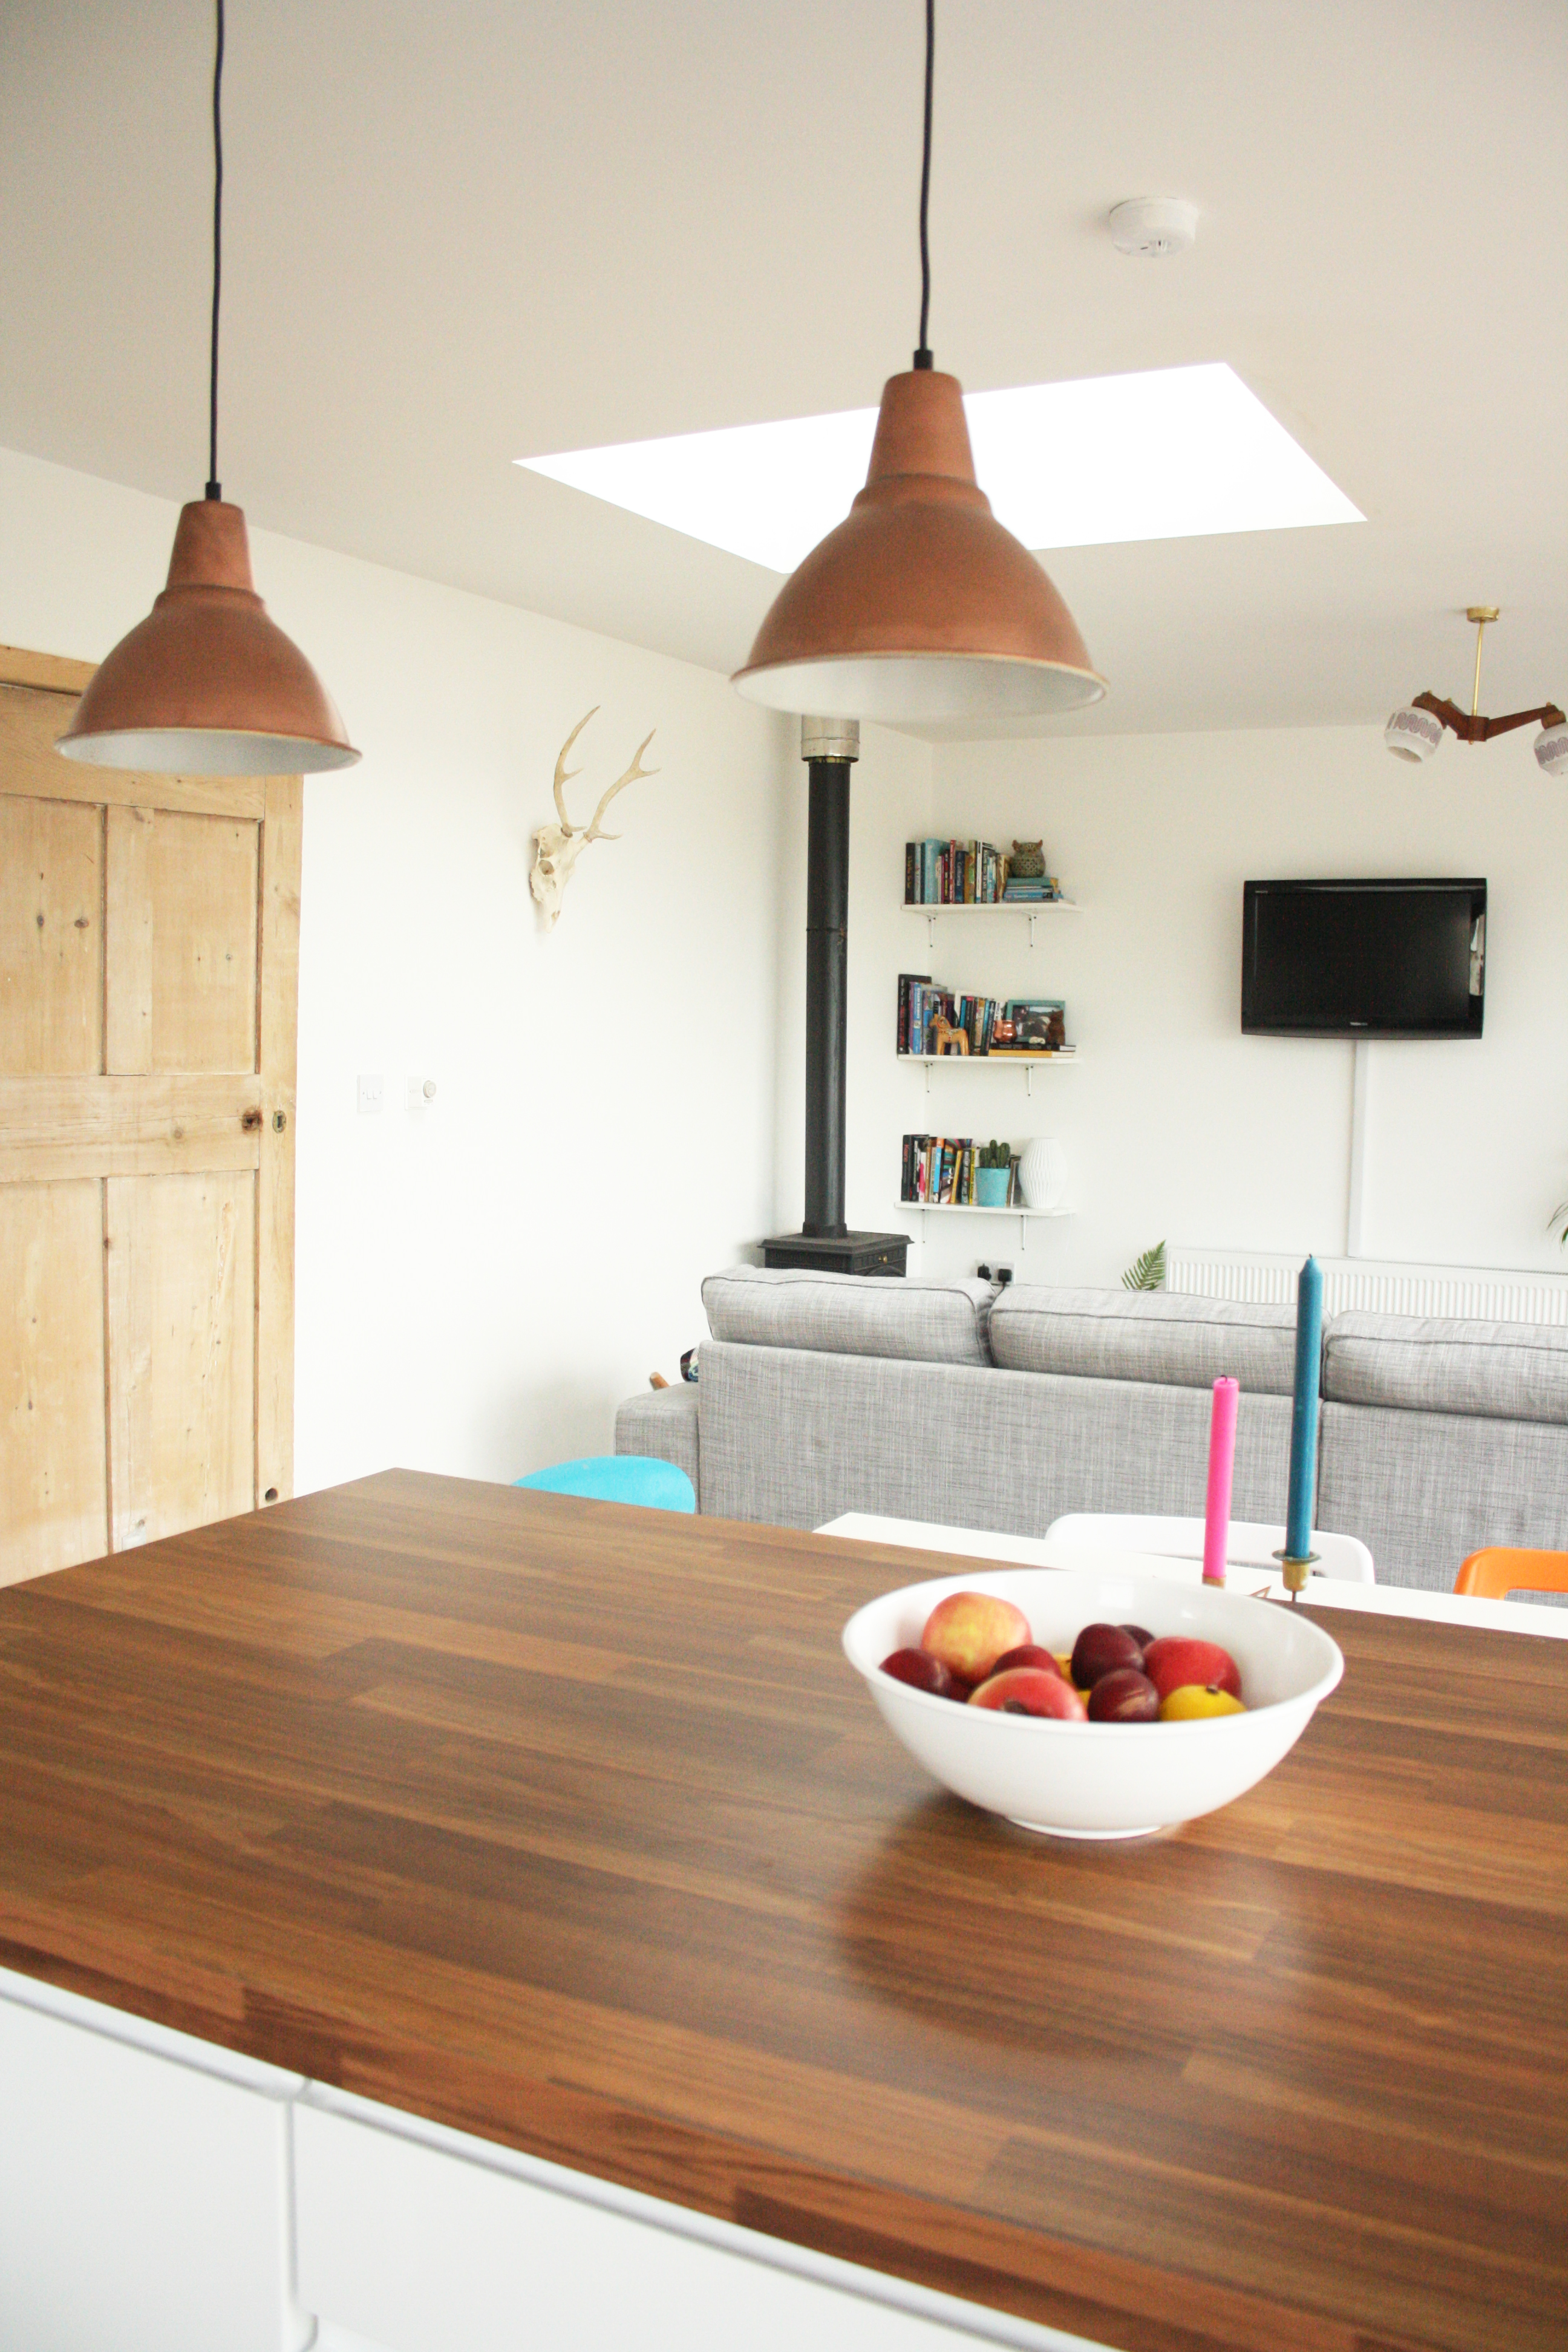 gaff tour: step inside this eclectic cork hideaway - gaff interiors